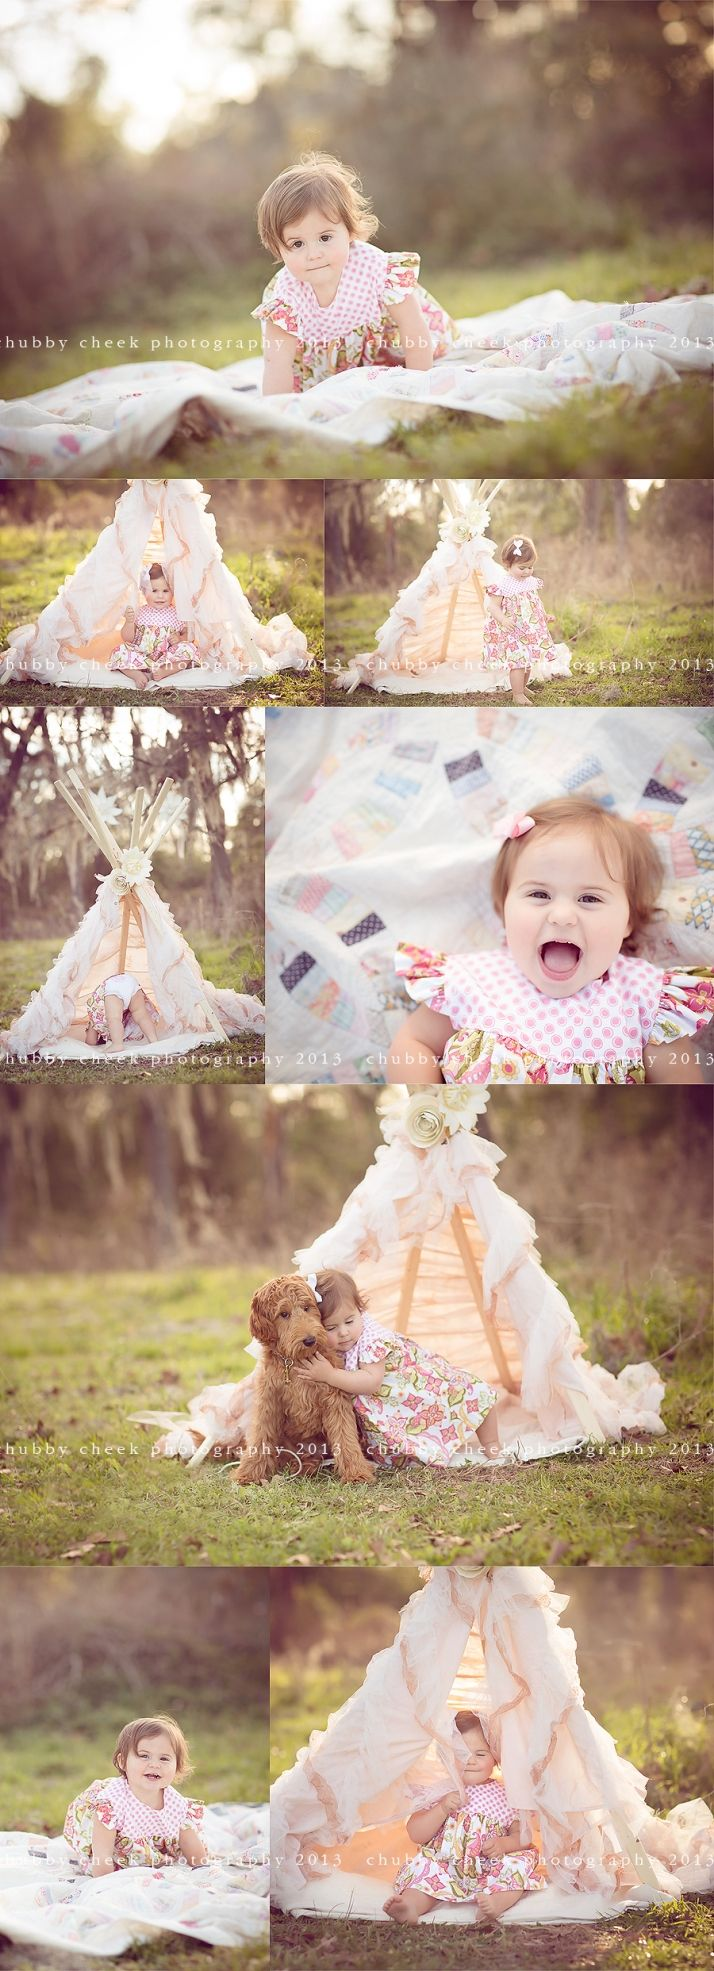 North Houston, Tomball, Cypress & The Woodlands TX Child & Family Photographer   chubby cheek photography blog - Part 18